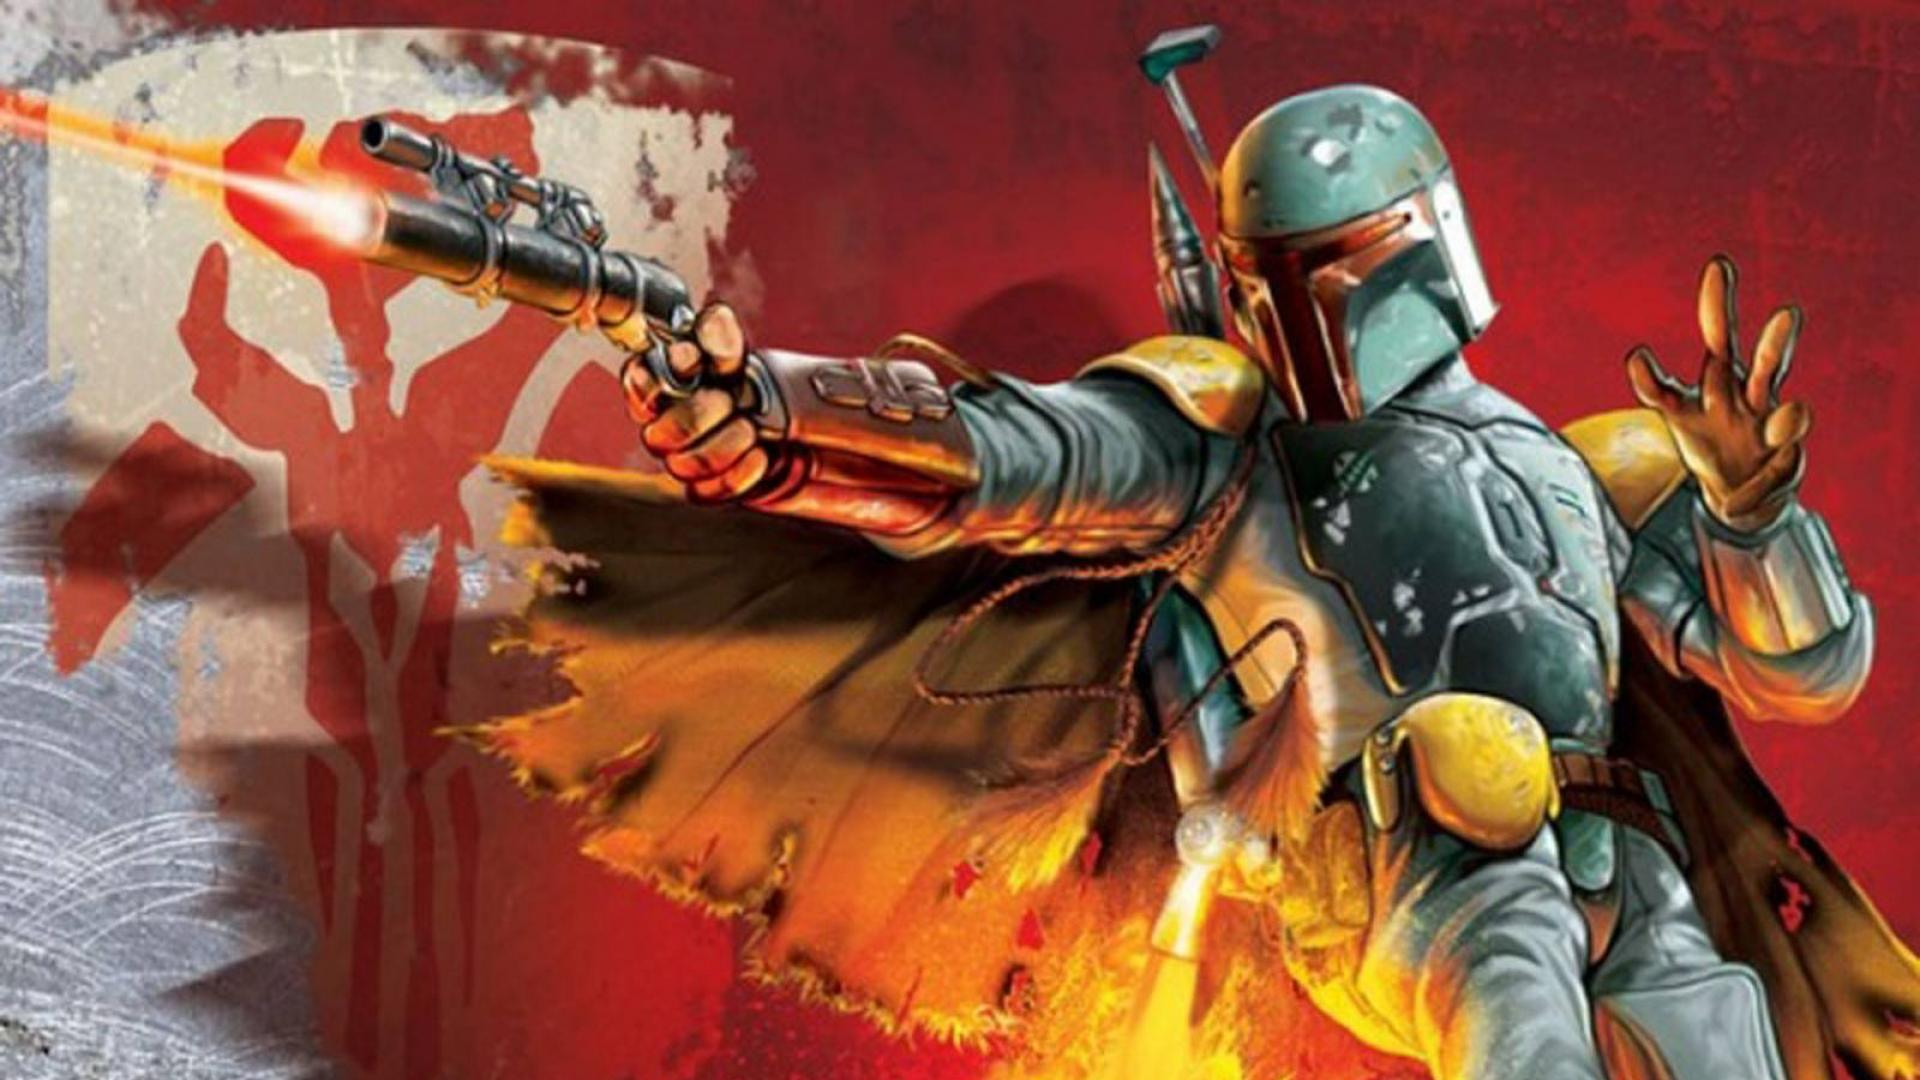 Pics Photos   Boba Fett Wallpaper 1920x1200 Boba Fett 1920x1080